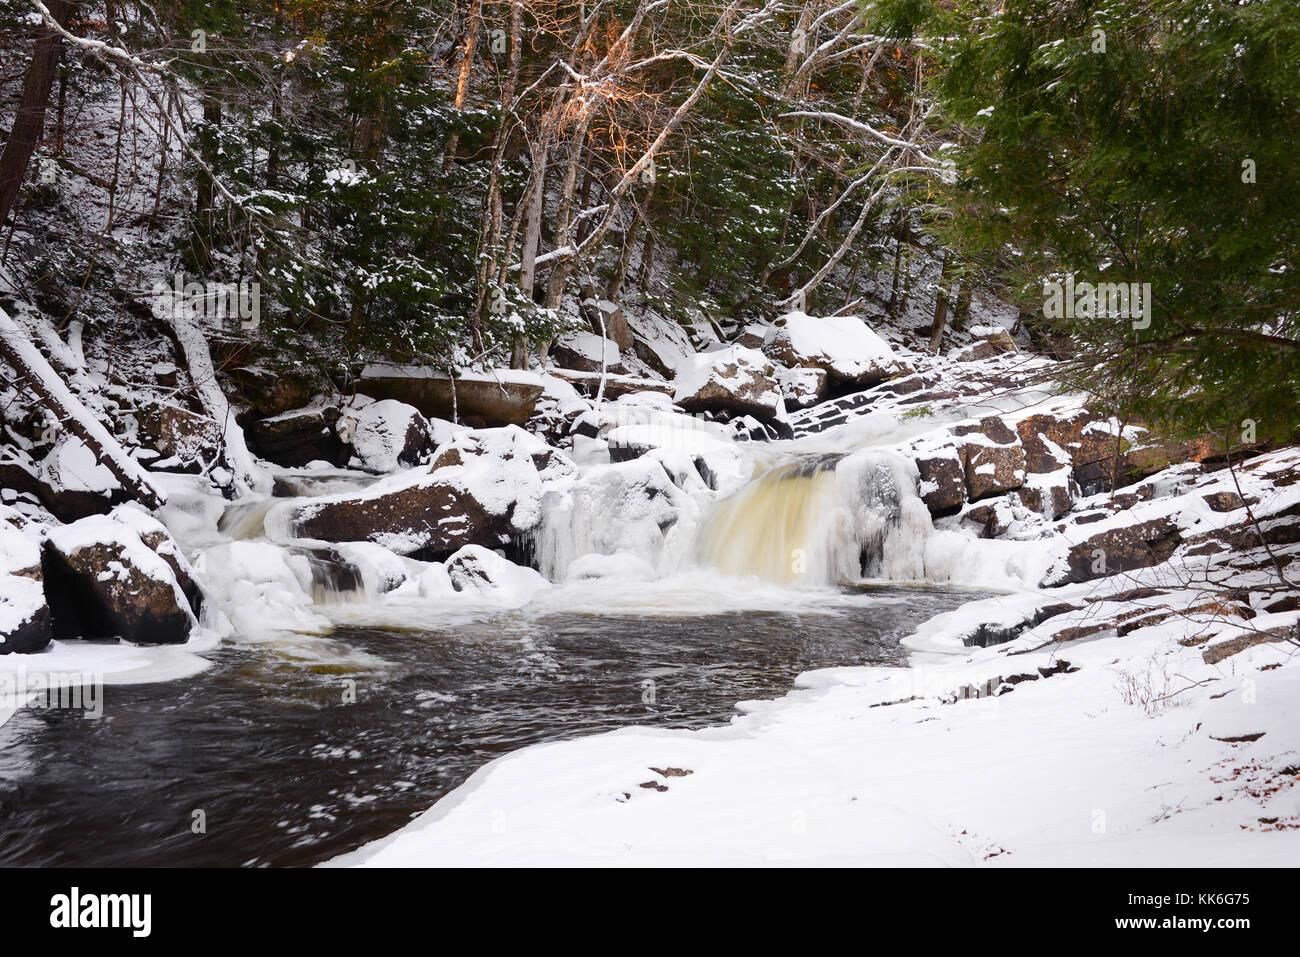 Austin Falls - winter waterfalls with snow and ice on the Sacandaga River in the Adirondack Mountains, NY, USA - Stock Image